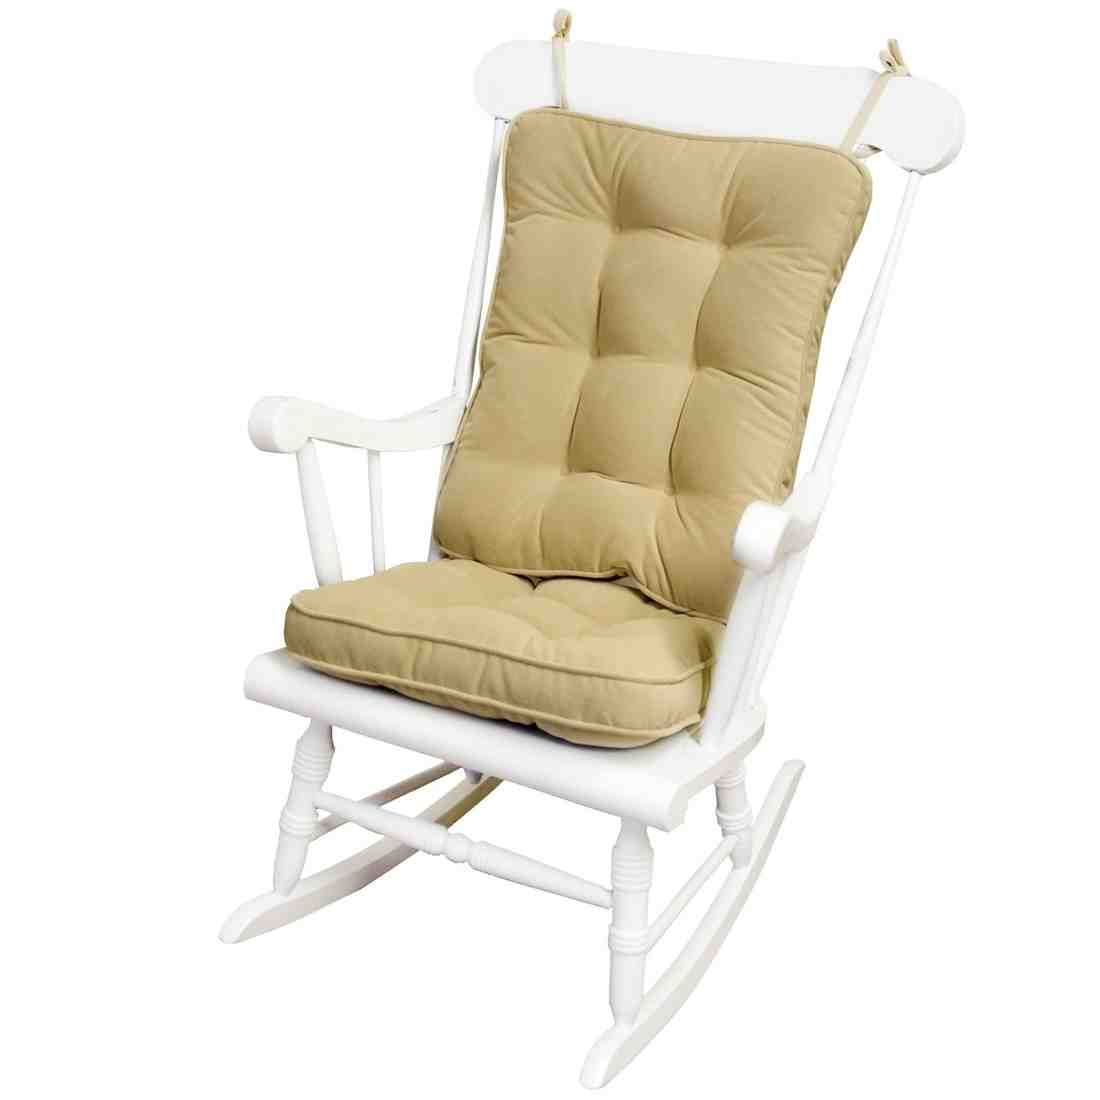 Rocking Chair Replacement Cushions Replacement Cushions For Glider Rocking Chairs Best Rocking